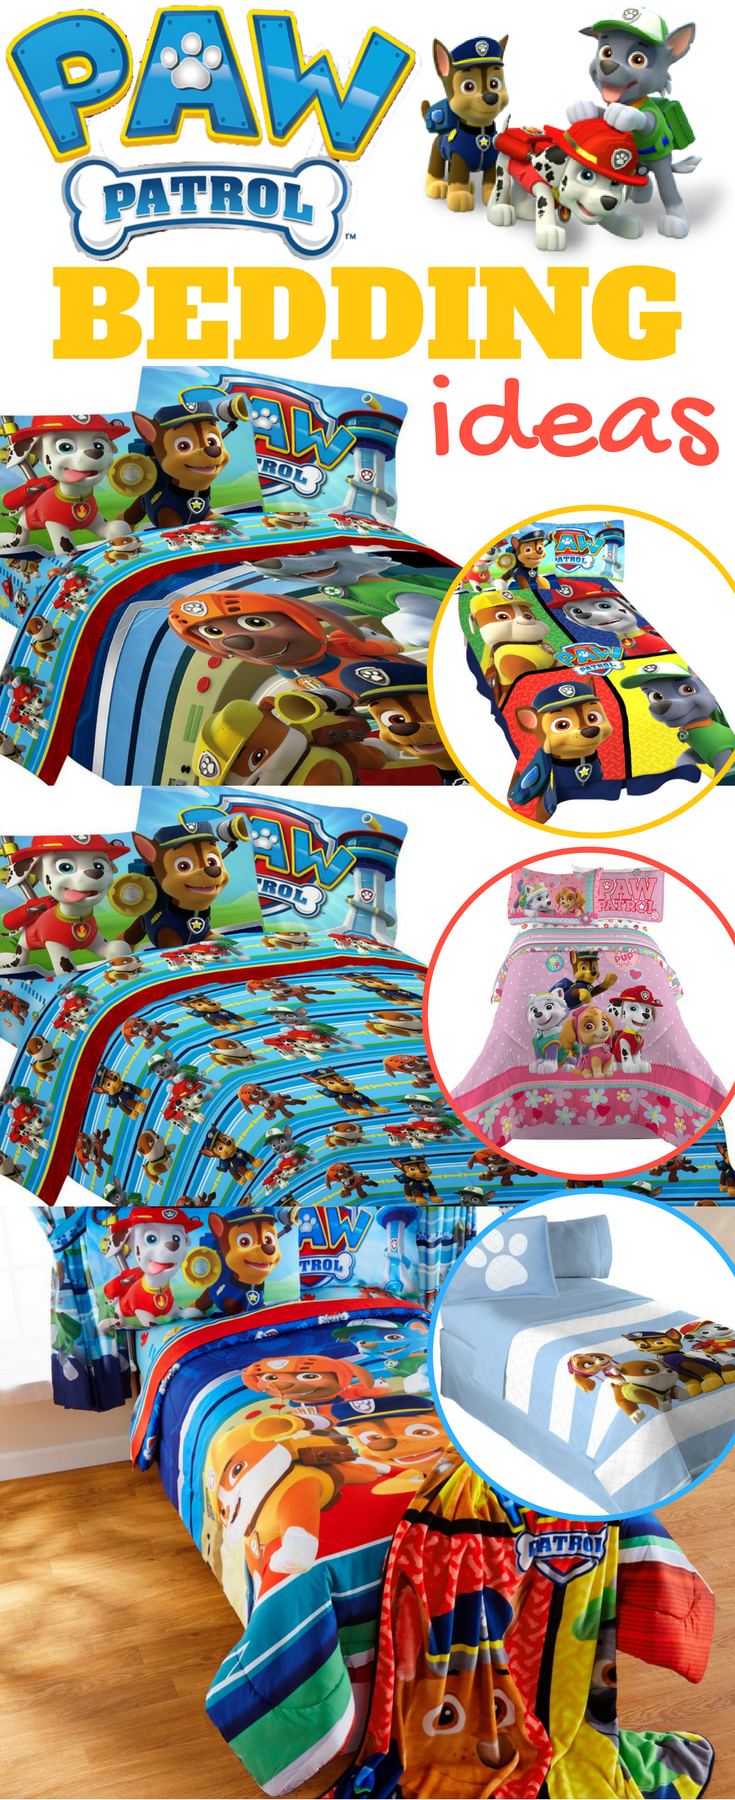 Paw Patrol Bedding, Pillows and Throws From $20 @ Walmart ...